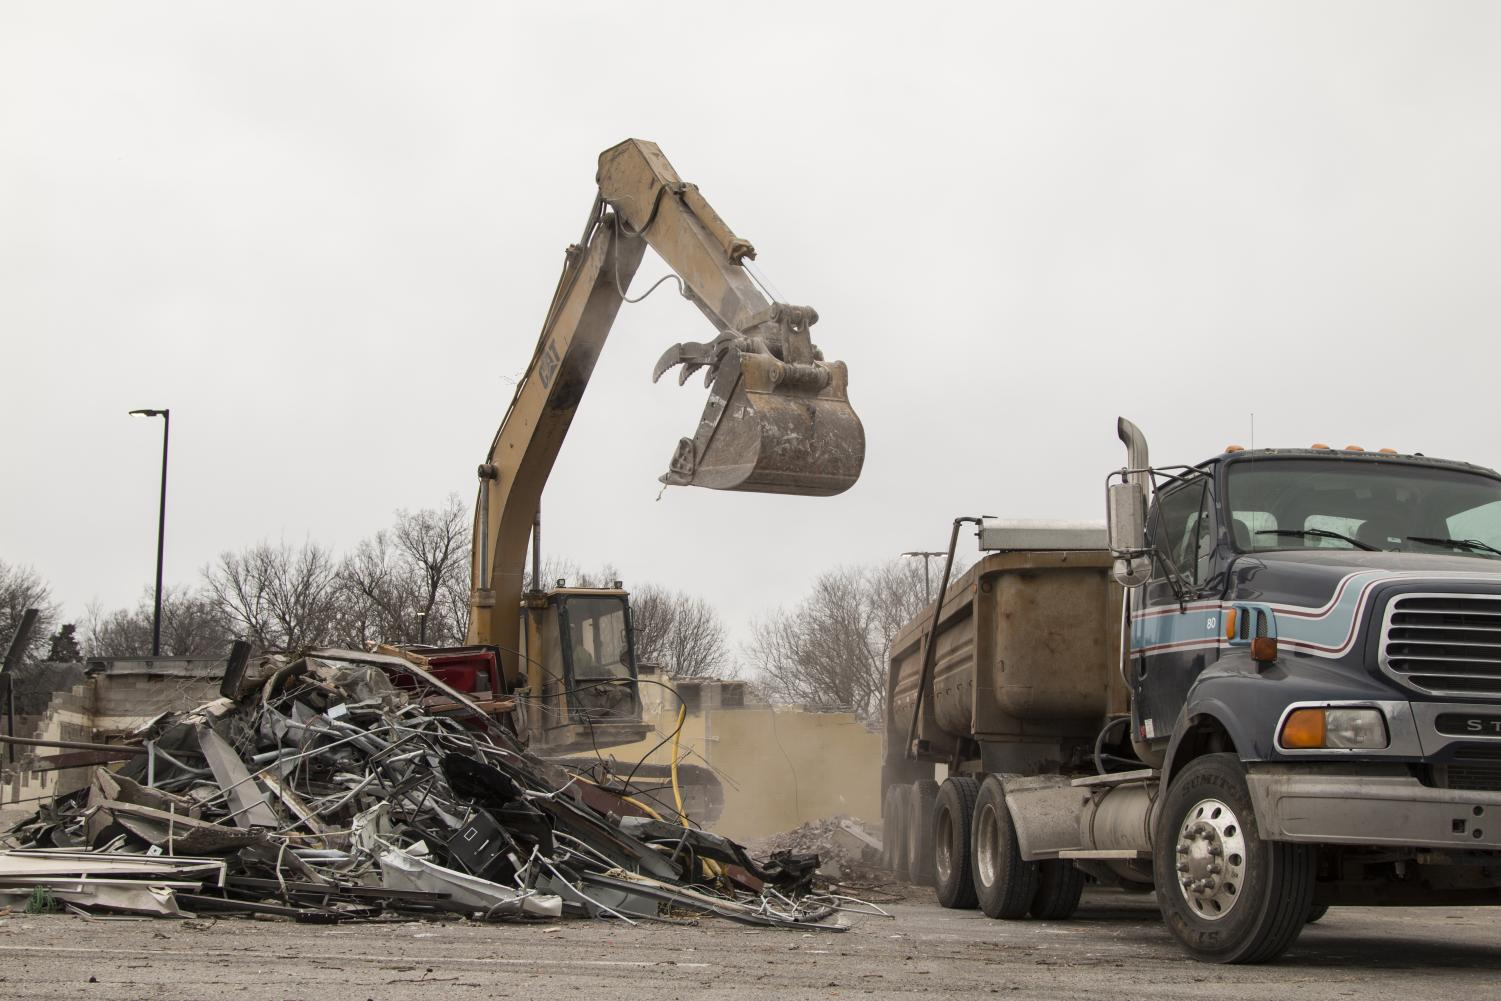 Blake Hall is in the process of being demolished on Tuesday, Feb. 19, 2019.